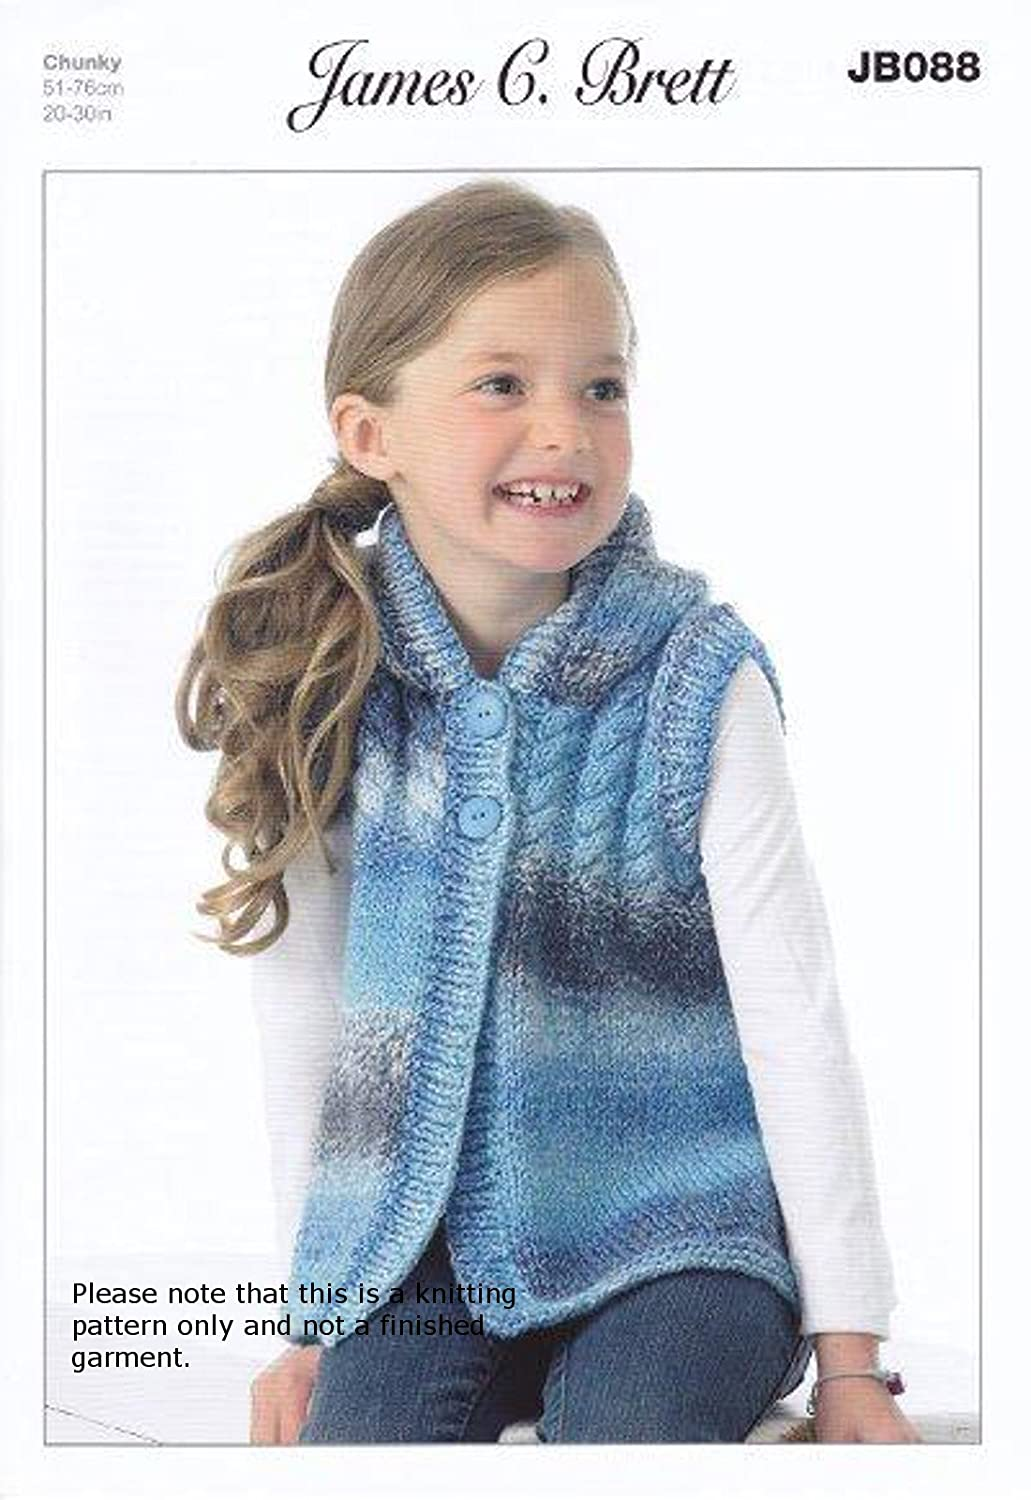 2a8bc4df6 James Brett Chunky Knitting Pattern - JB088 Children s Hooded Top  Baby  Product   Amazon.co.uk  Kitchen   Home